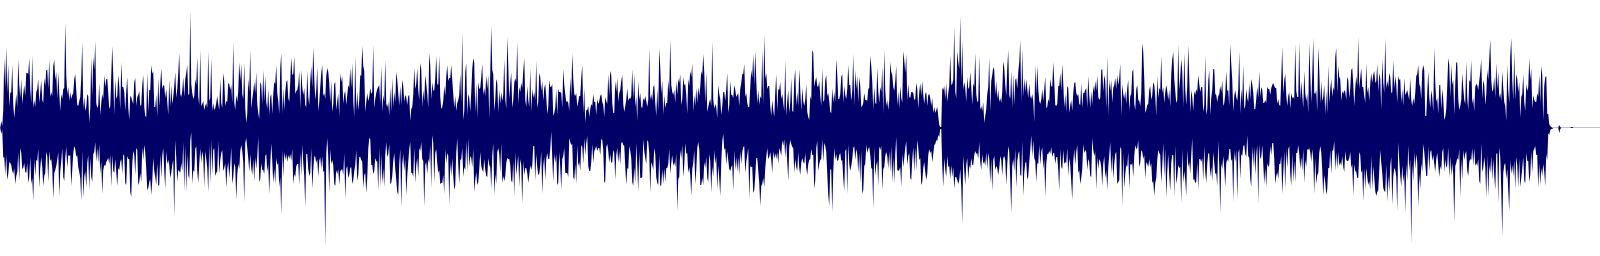 waveform of track #141871